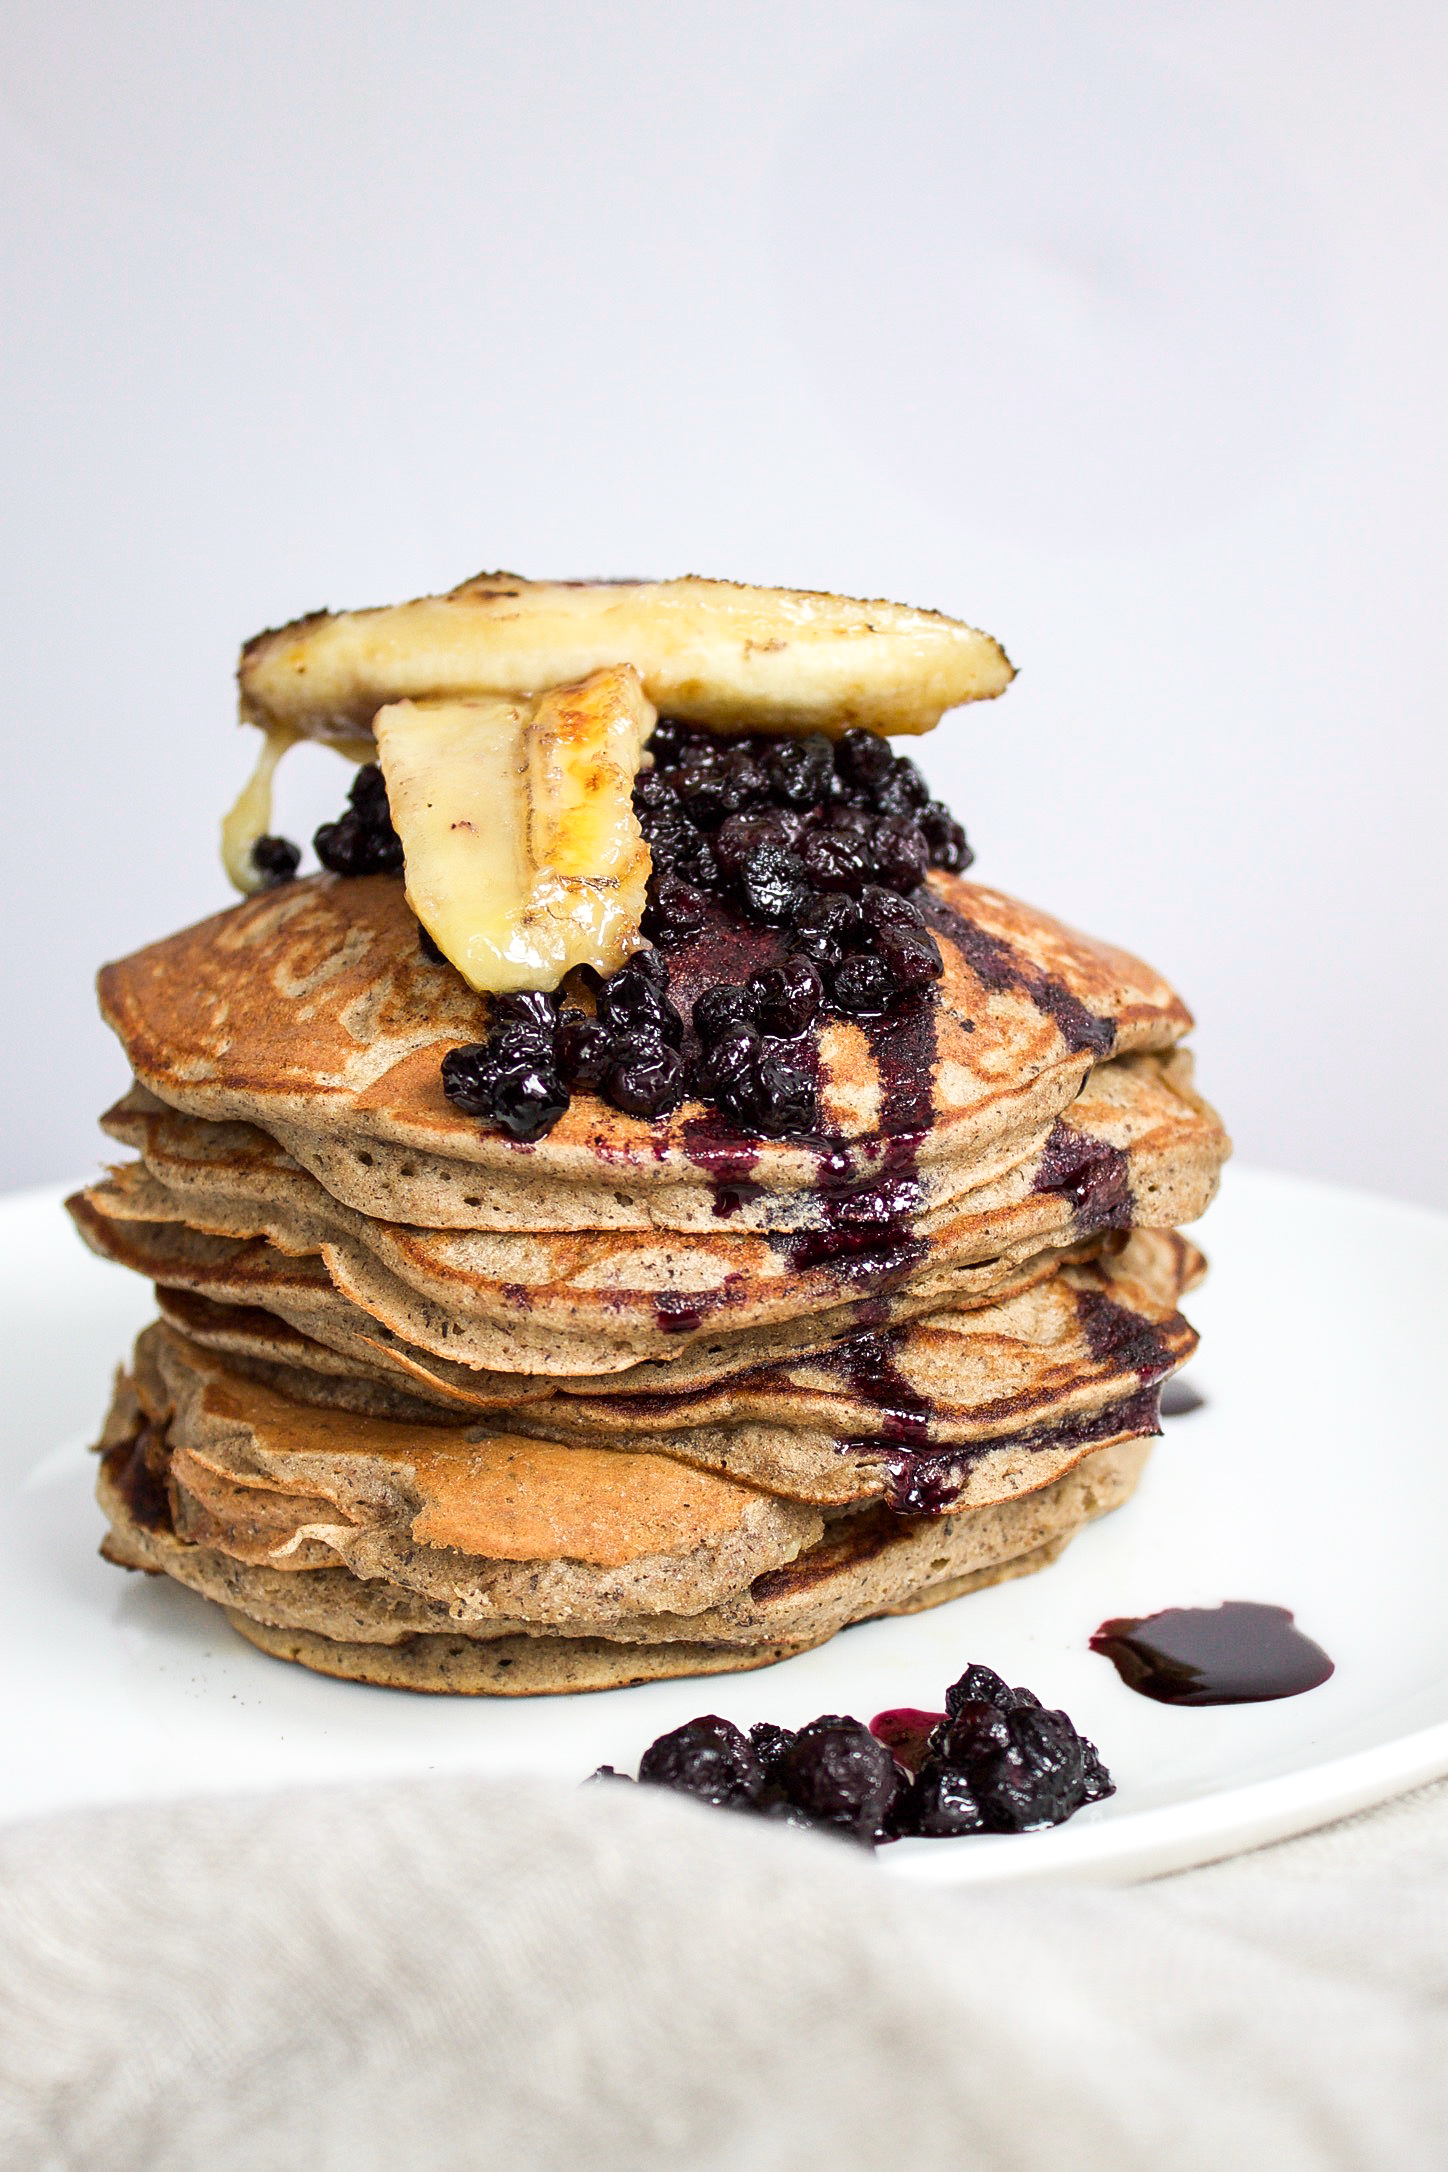 Cinnamon Buckwheat Pancakes With Blueberry Syrup And Caramelized Bananas